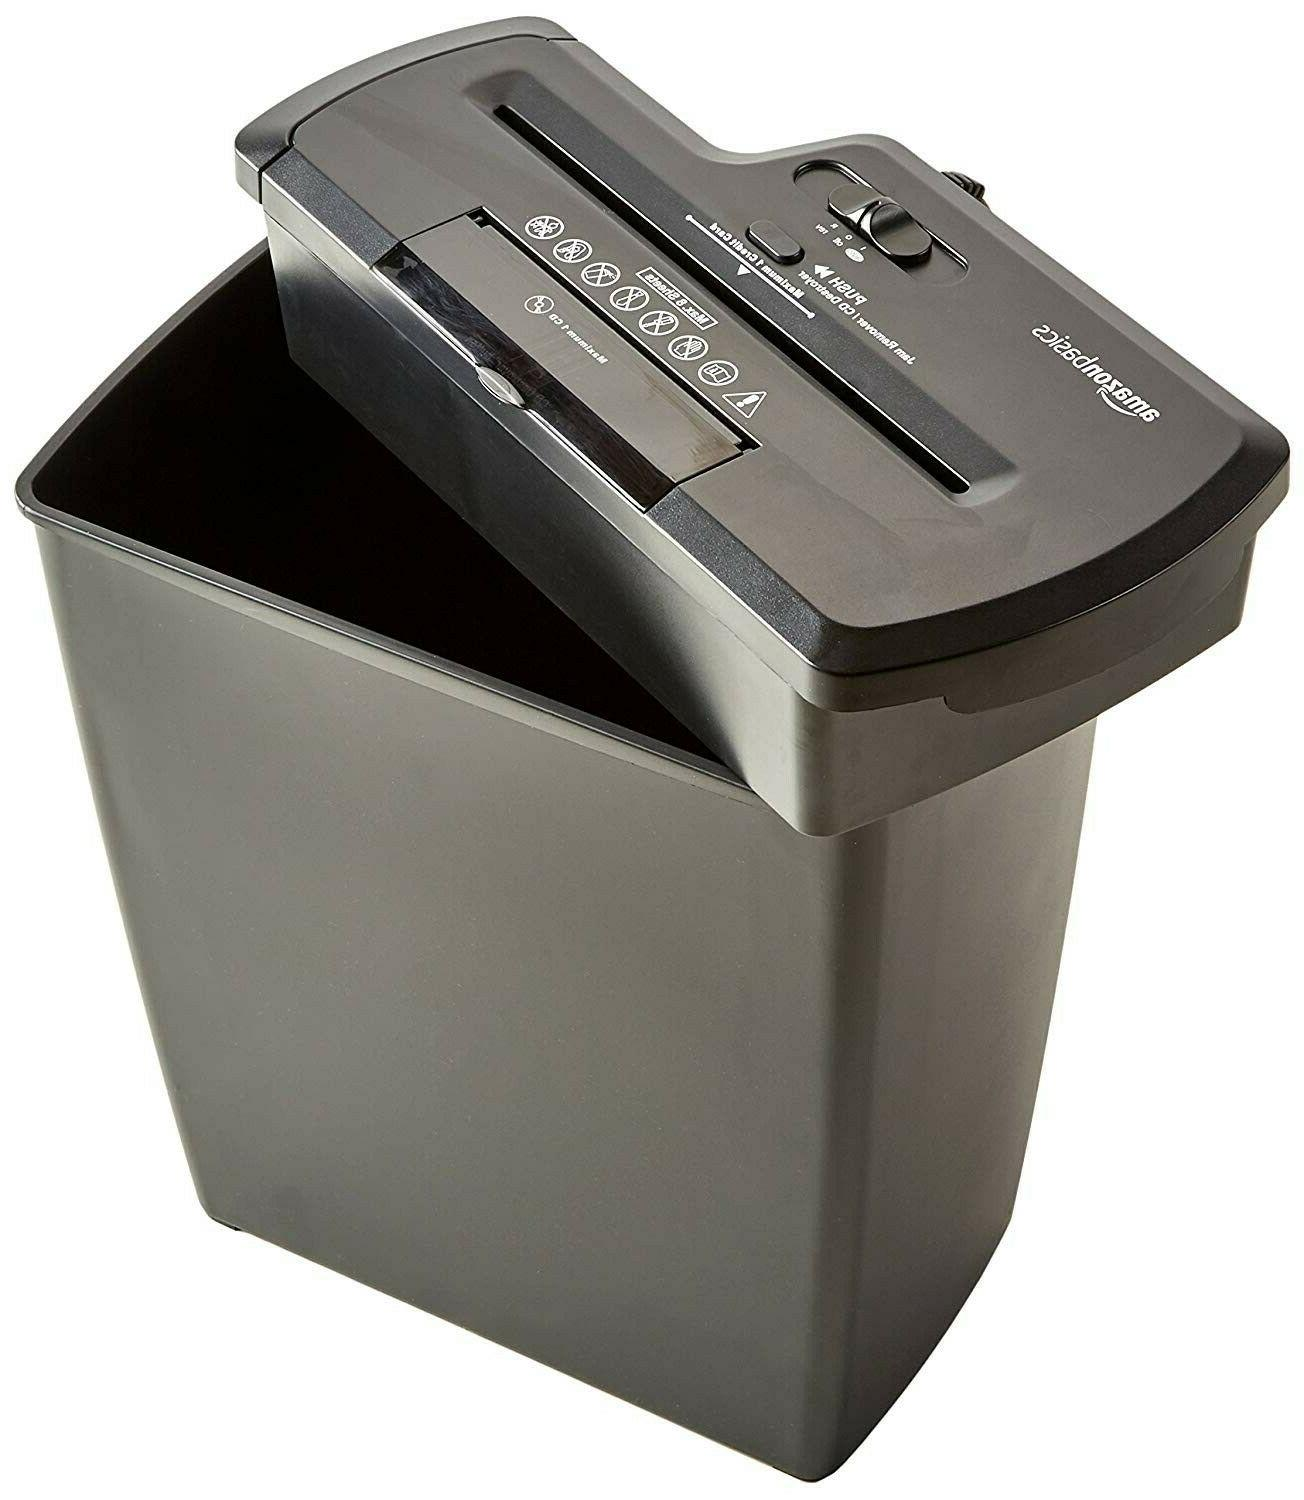 AmazonBasics CD and Card Home Office Shredder.